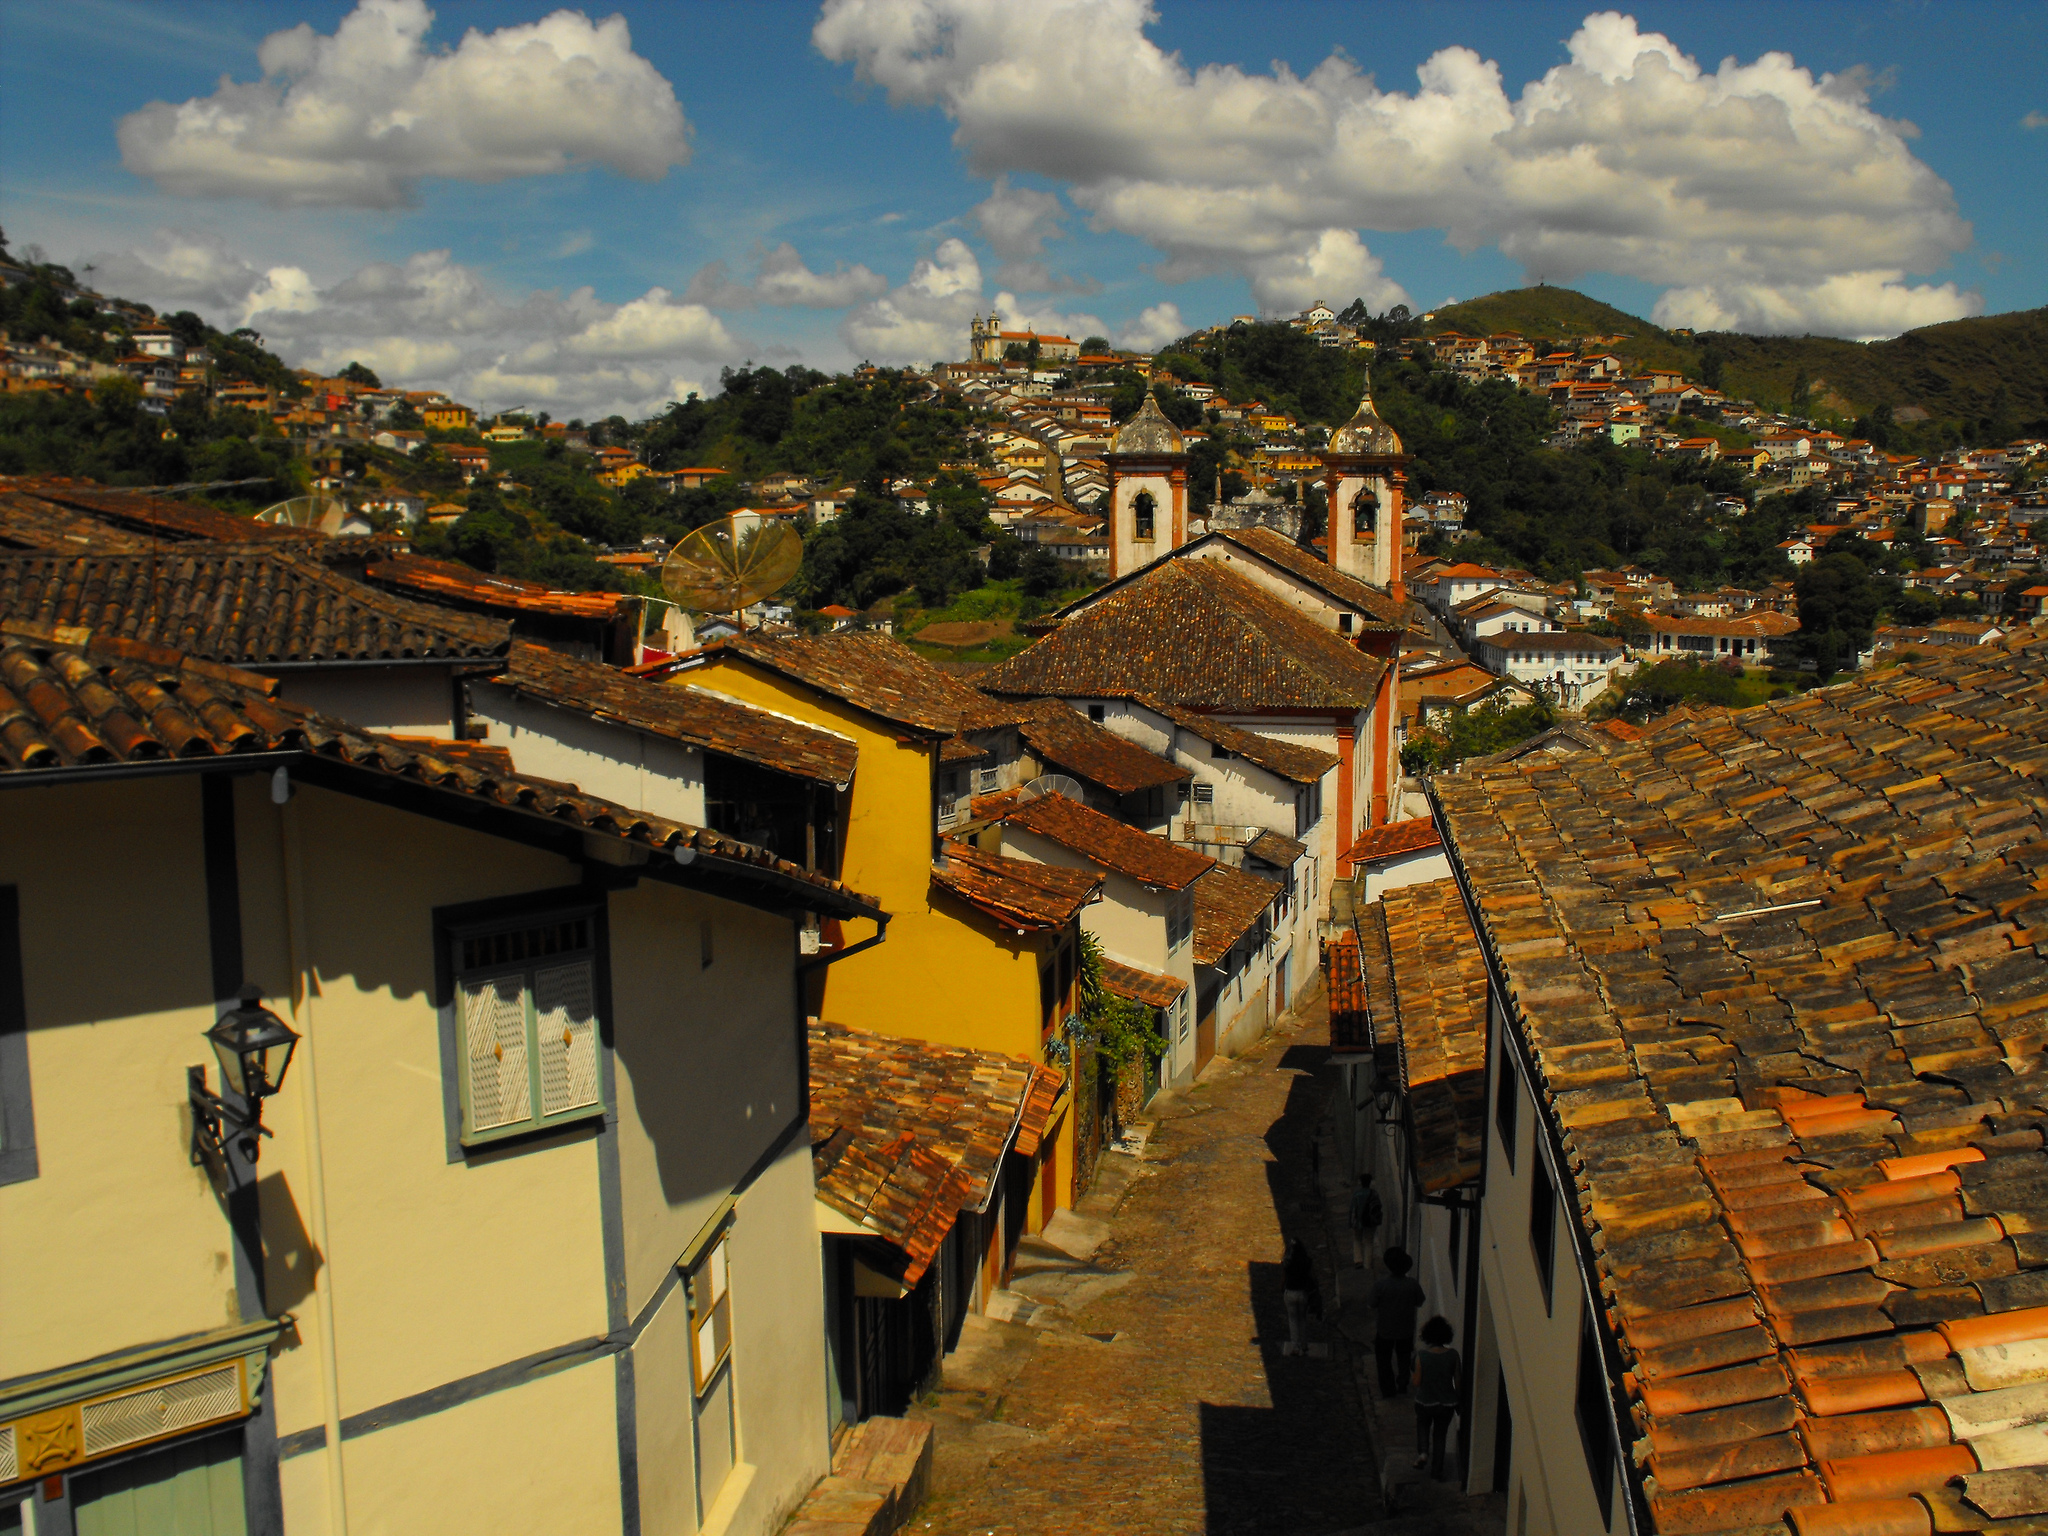 Ouro Preto is one of the prettiest colonial towns in Brazil ... photo by CC user  18877859@N00 on flickr